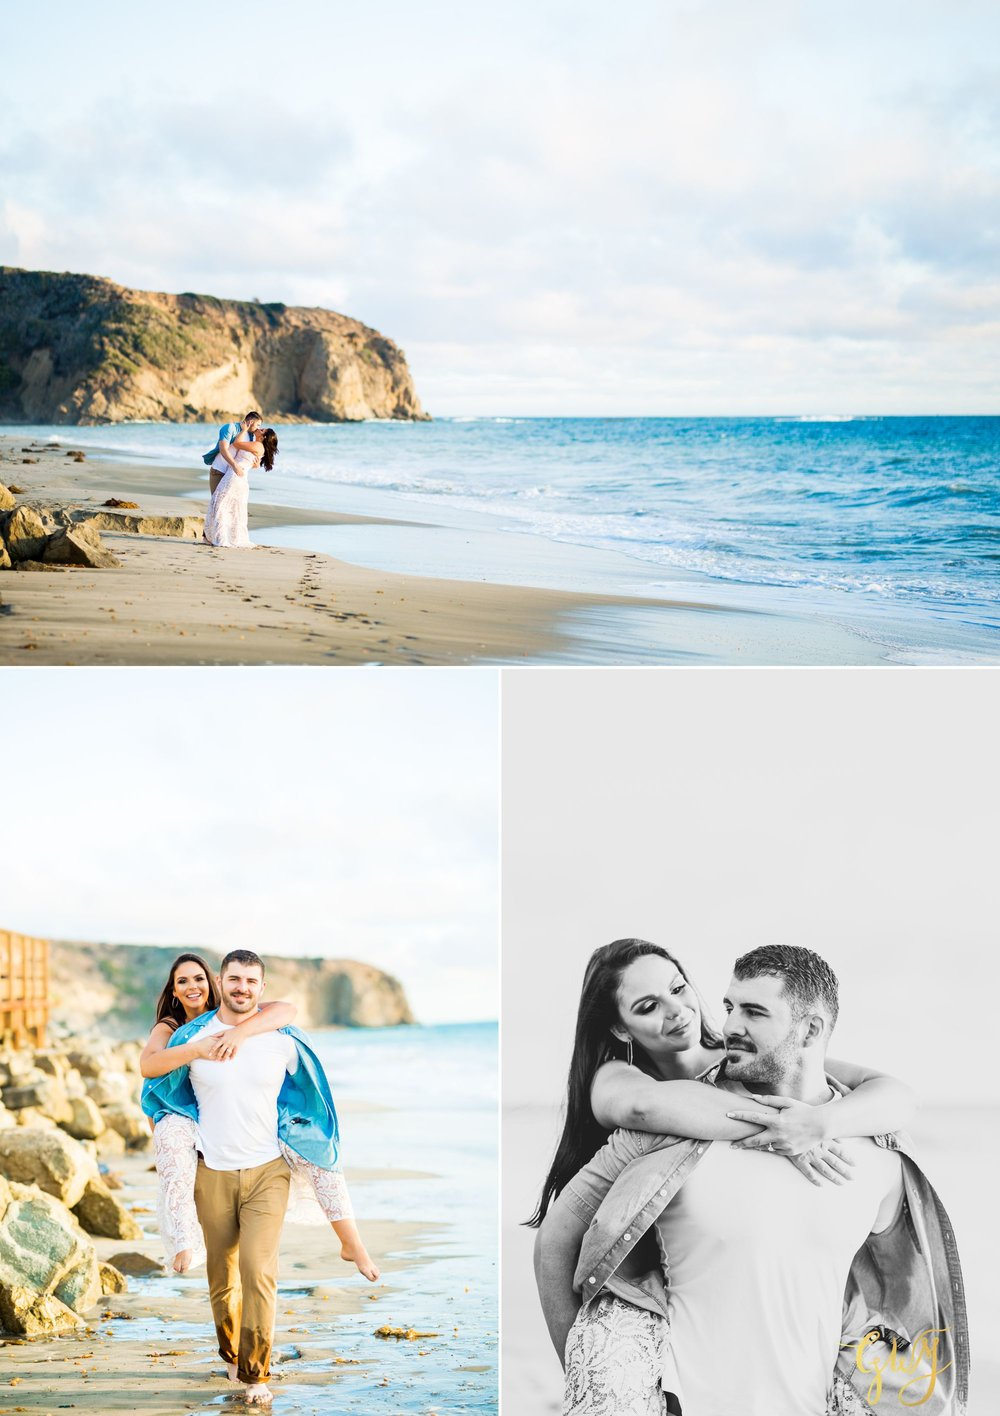 Alejandro + Rachel Mission San Juan Capistrano Strands Beach Dana Point Sunset Engagement by Glass Woods Media 10.jpg